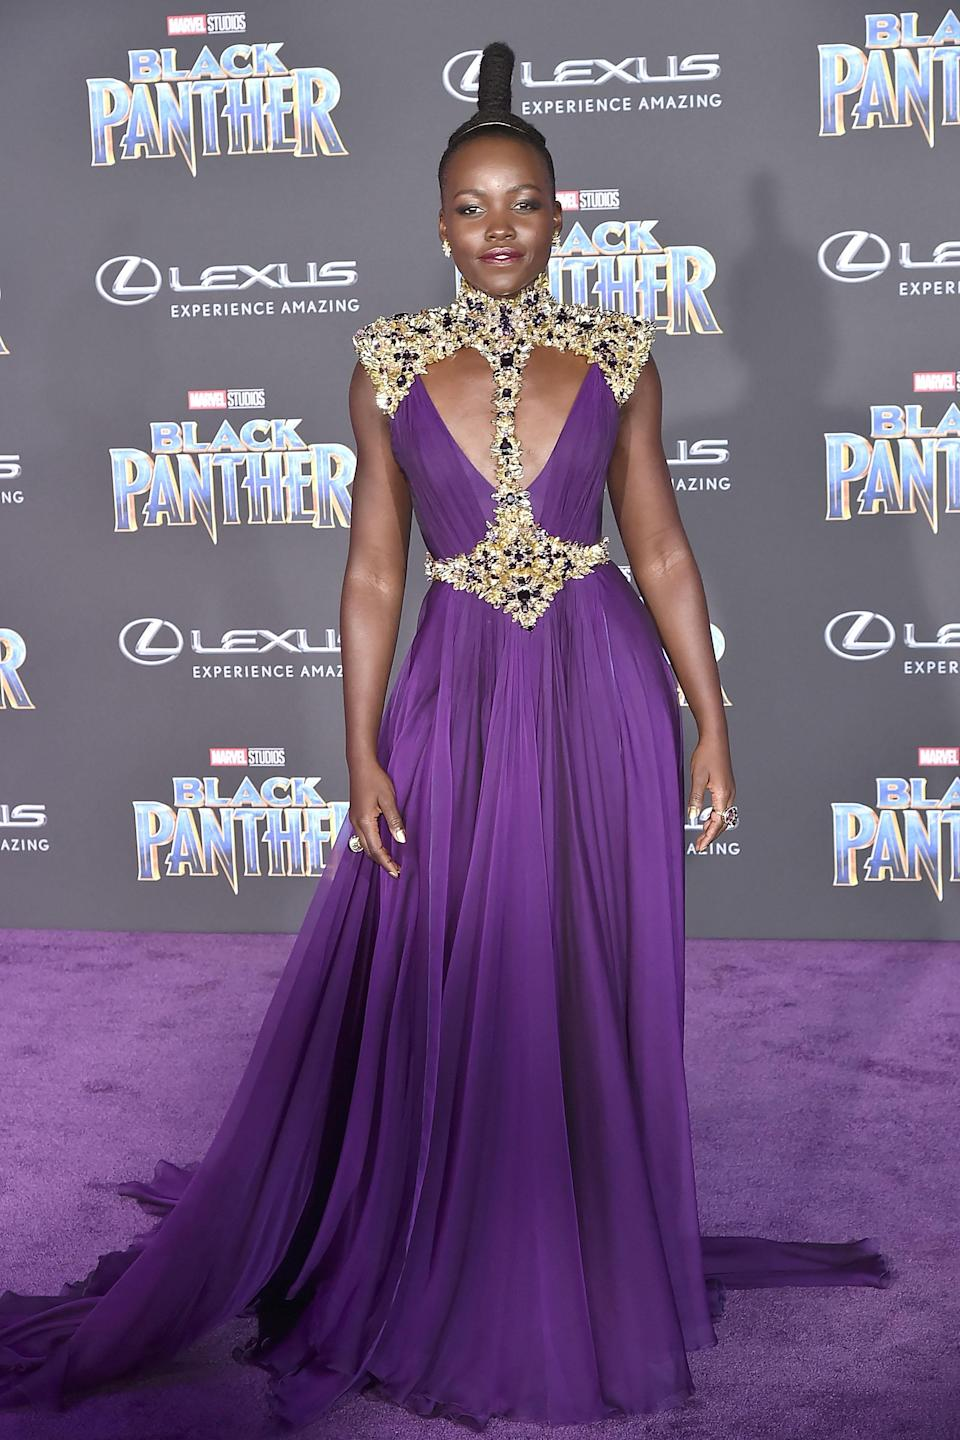 The 36-year-old pulled off a series of powerful looks while promoting 'Black Panther' in 2018 [Photo: Getty]